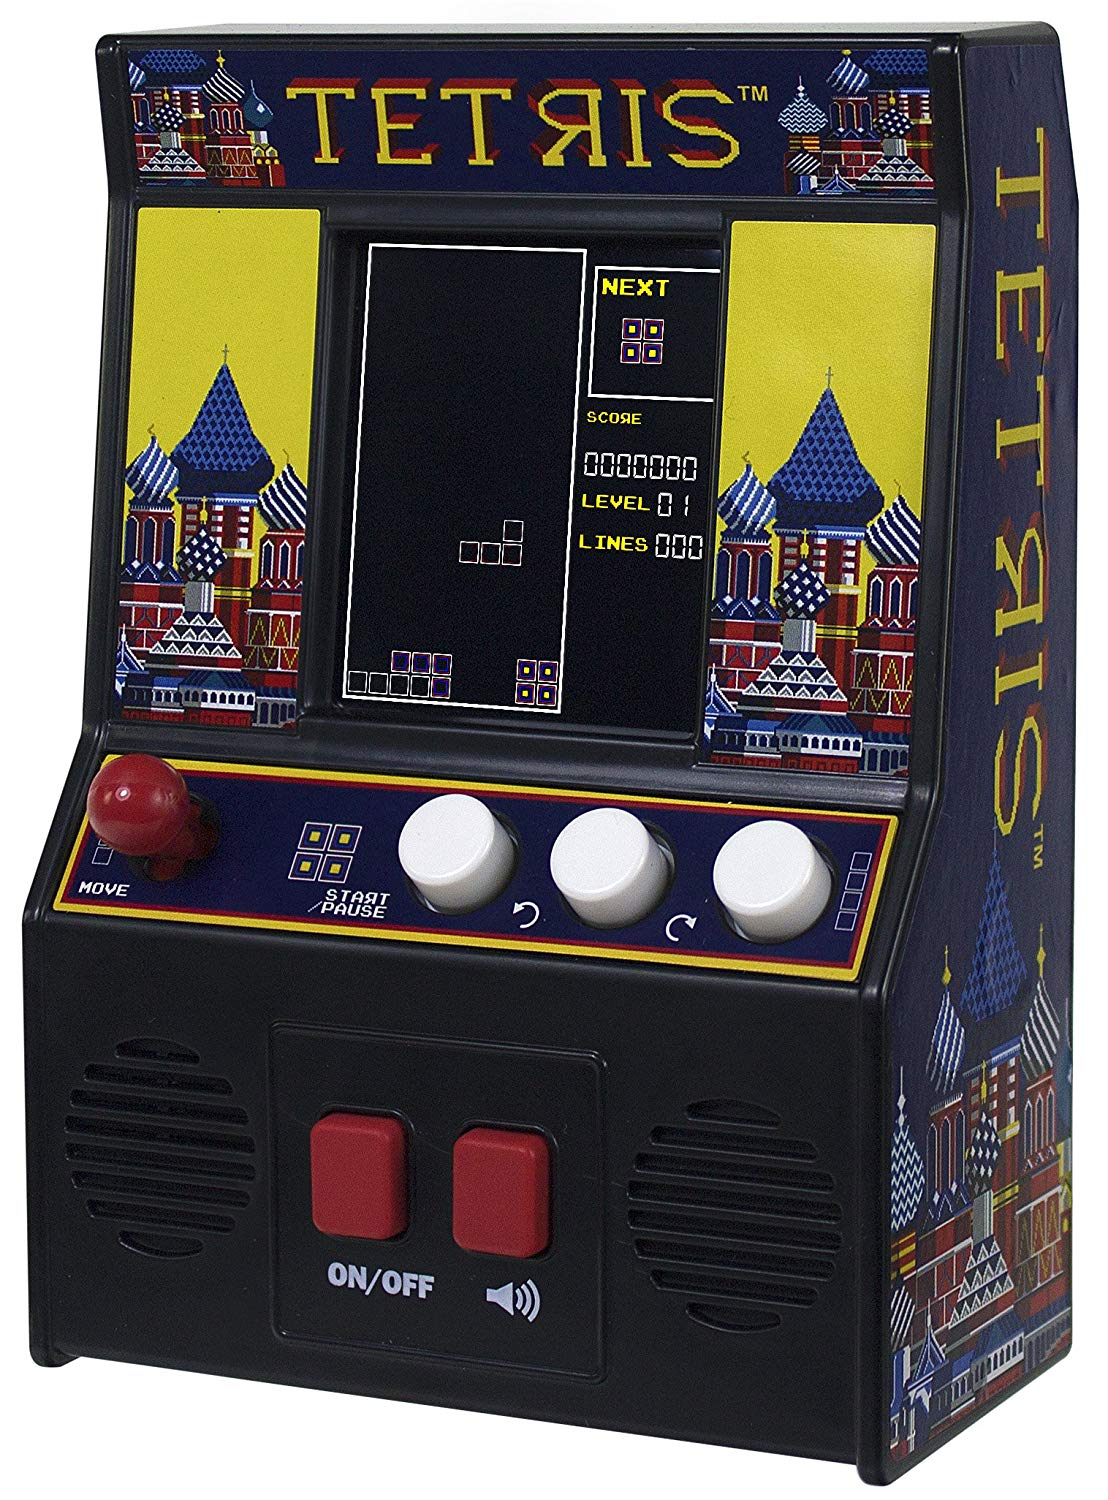 Basic Fun! 09594 Tetris Mini Arcade Game (4C Screen), Multicolour